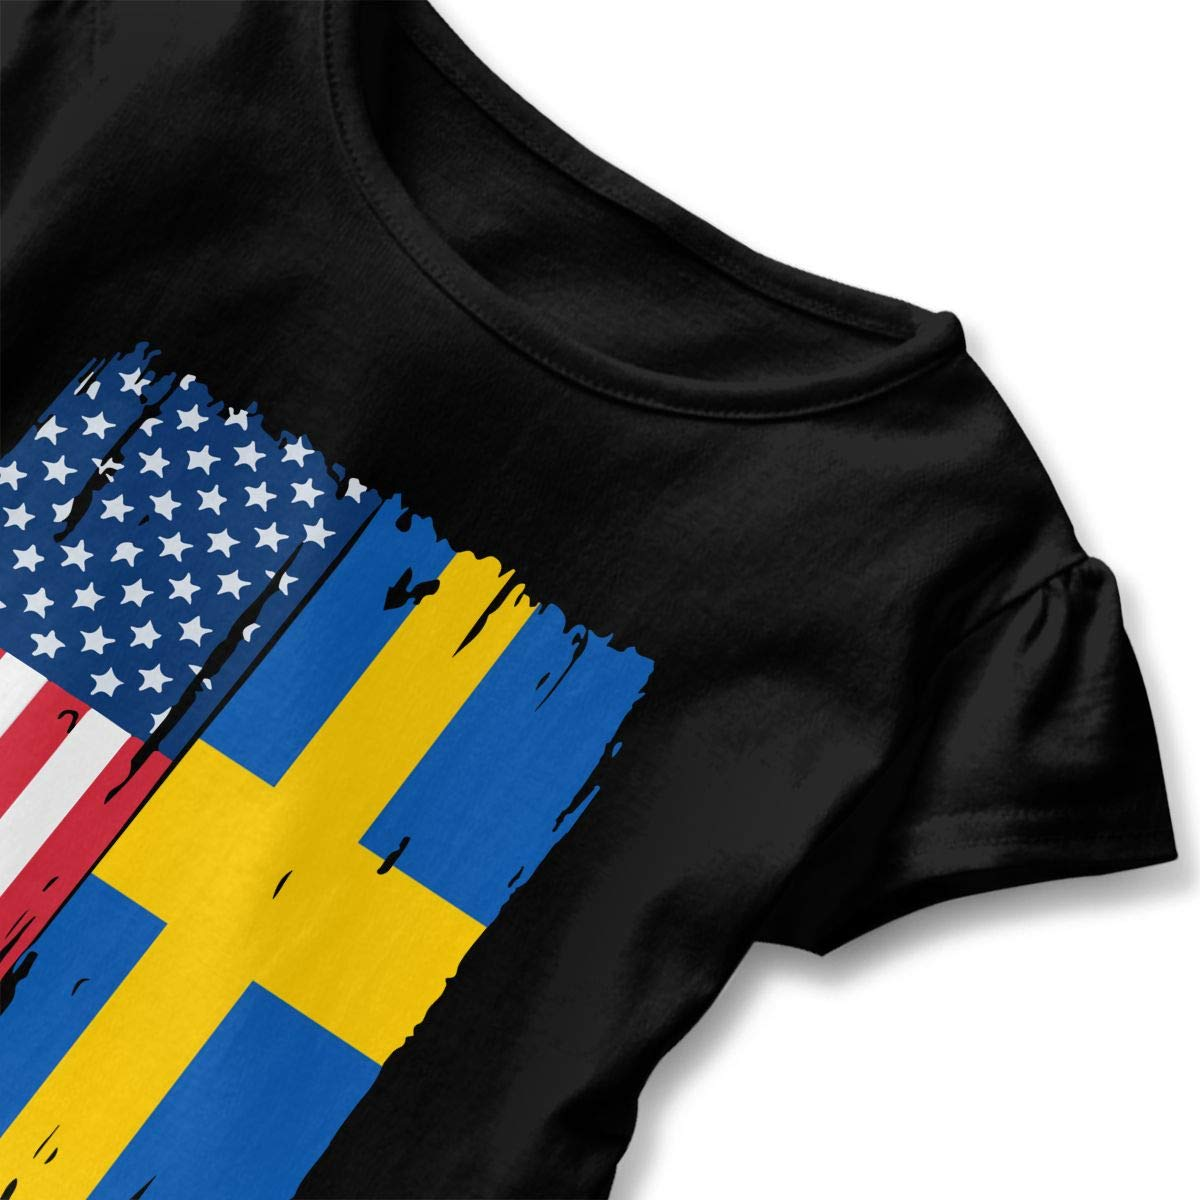 HYBDX9T Little Girls American Swedish Flag Funny Short Sleeve Cotton T Shirts Basic Tops Tee Clothes